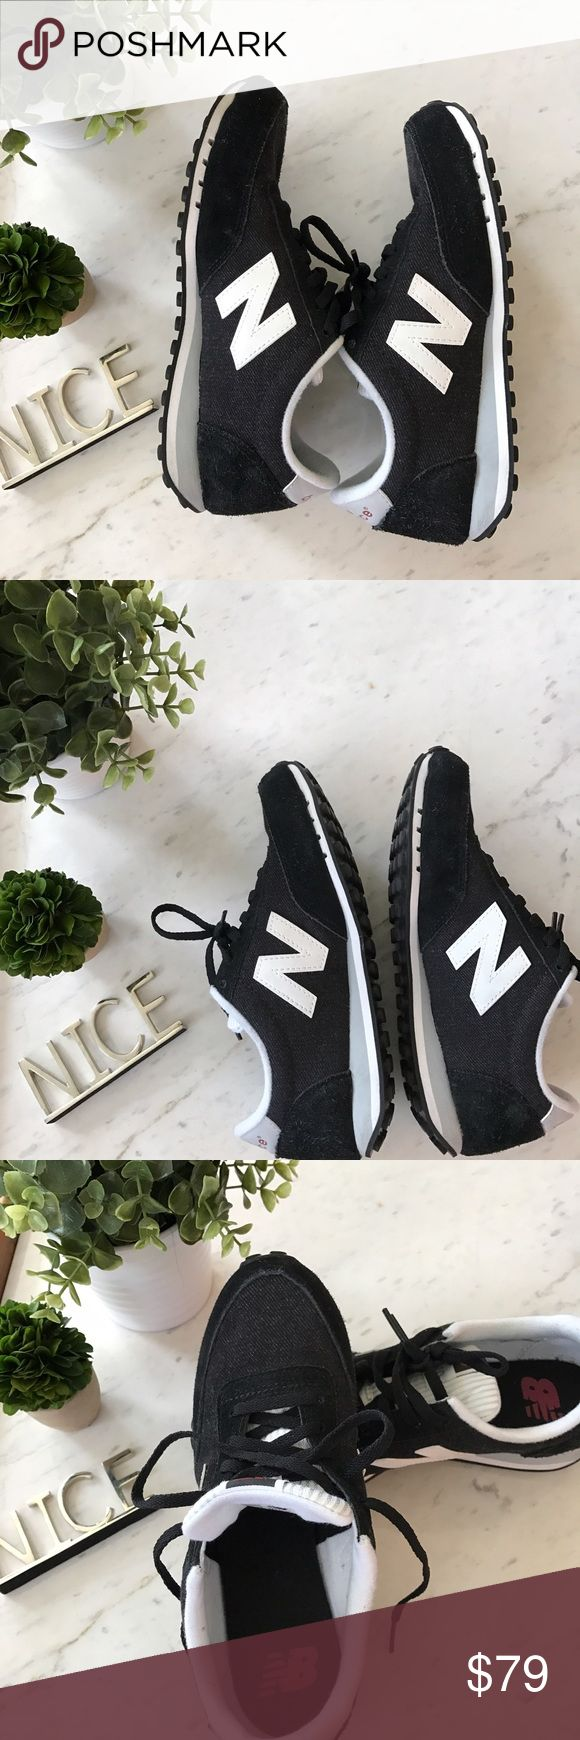 NEW! New Balance Black and White size 7 🖤 .  I have too many New Balance and a small closet!  😍😍😍😍😍😍.  All are 10/10 condition used a few times.   All come with New Balance BOX! 💚Mint and Yellow 620 style - size 7 US   ❤️Red and Black 410 style - size 7.5 US   💚Green 420 style - size 7.5 US  💜Purple 420 style - size 7.5 US                                            🖤Black and white 410 style - size 7 US [this listing]   If you want more photos, just ask me 📸  Smoke and pet free…